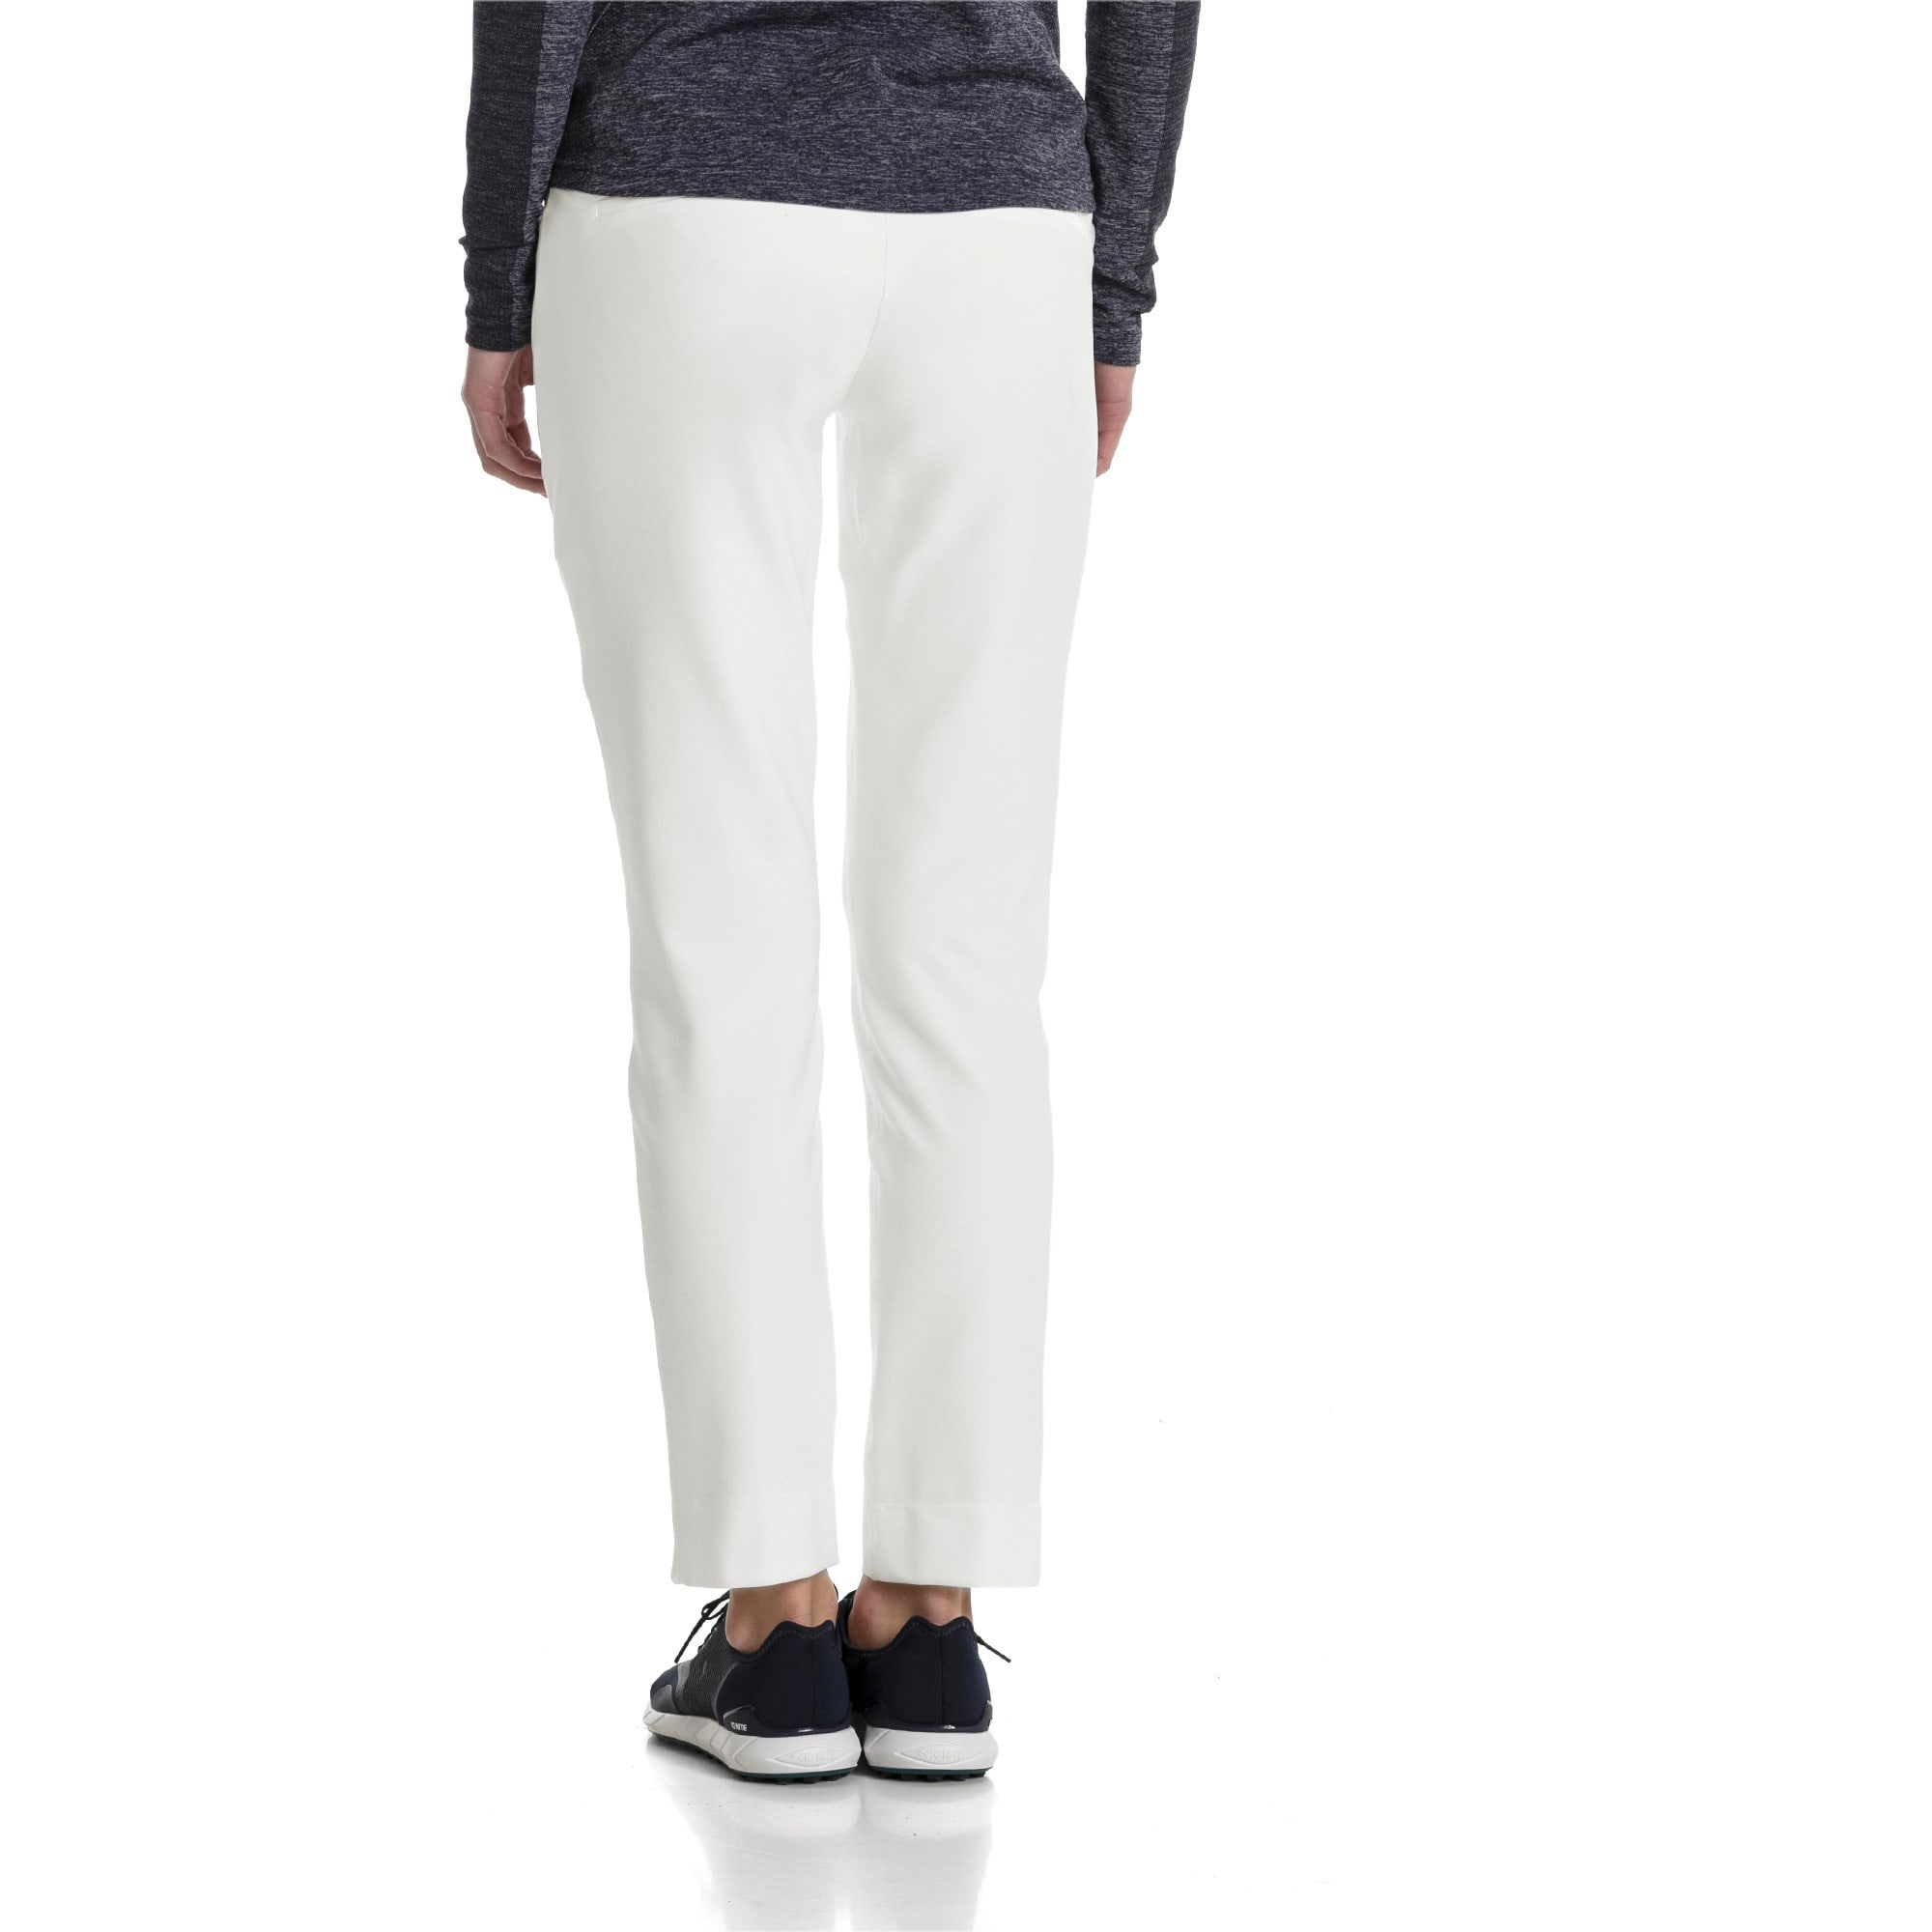 Thumbnail 2 of Golf Women's PWRSHAPE Pull On Pants, Bright White, medium